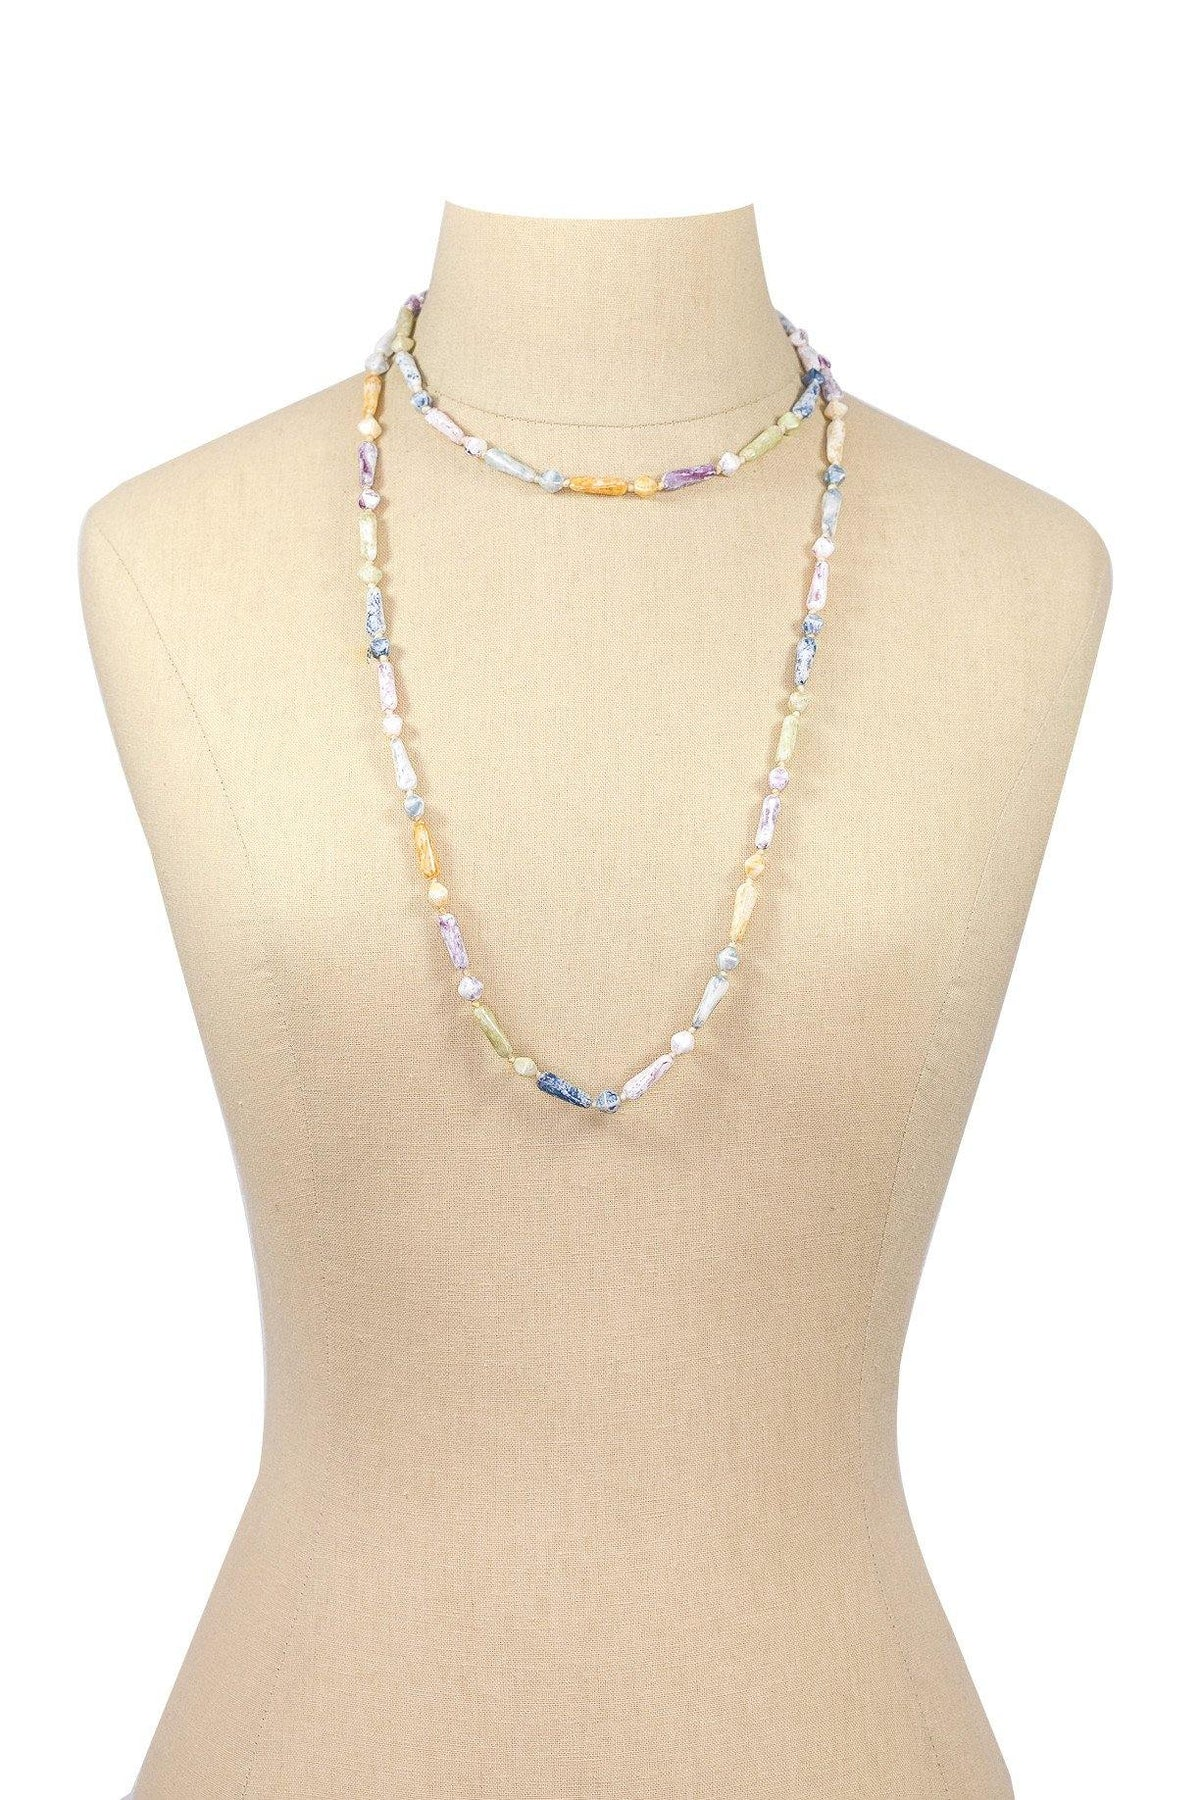 60's Vintage Stone Layering Necklace